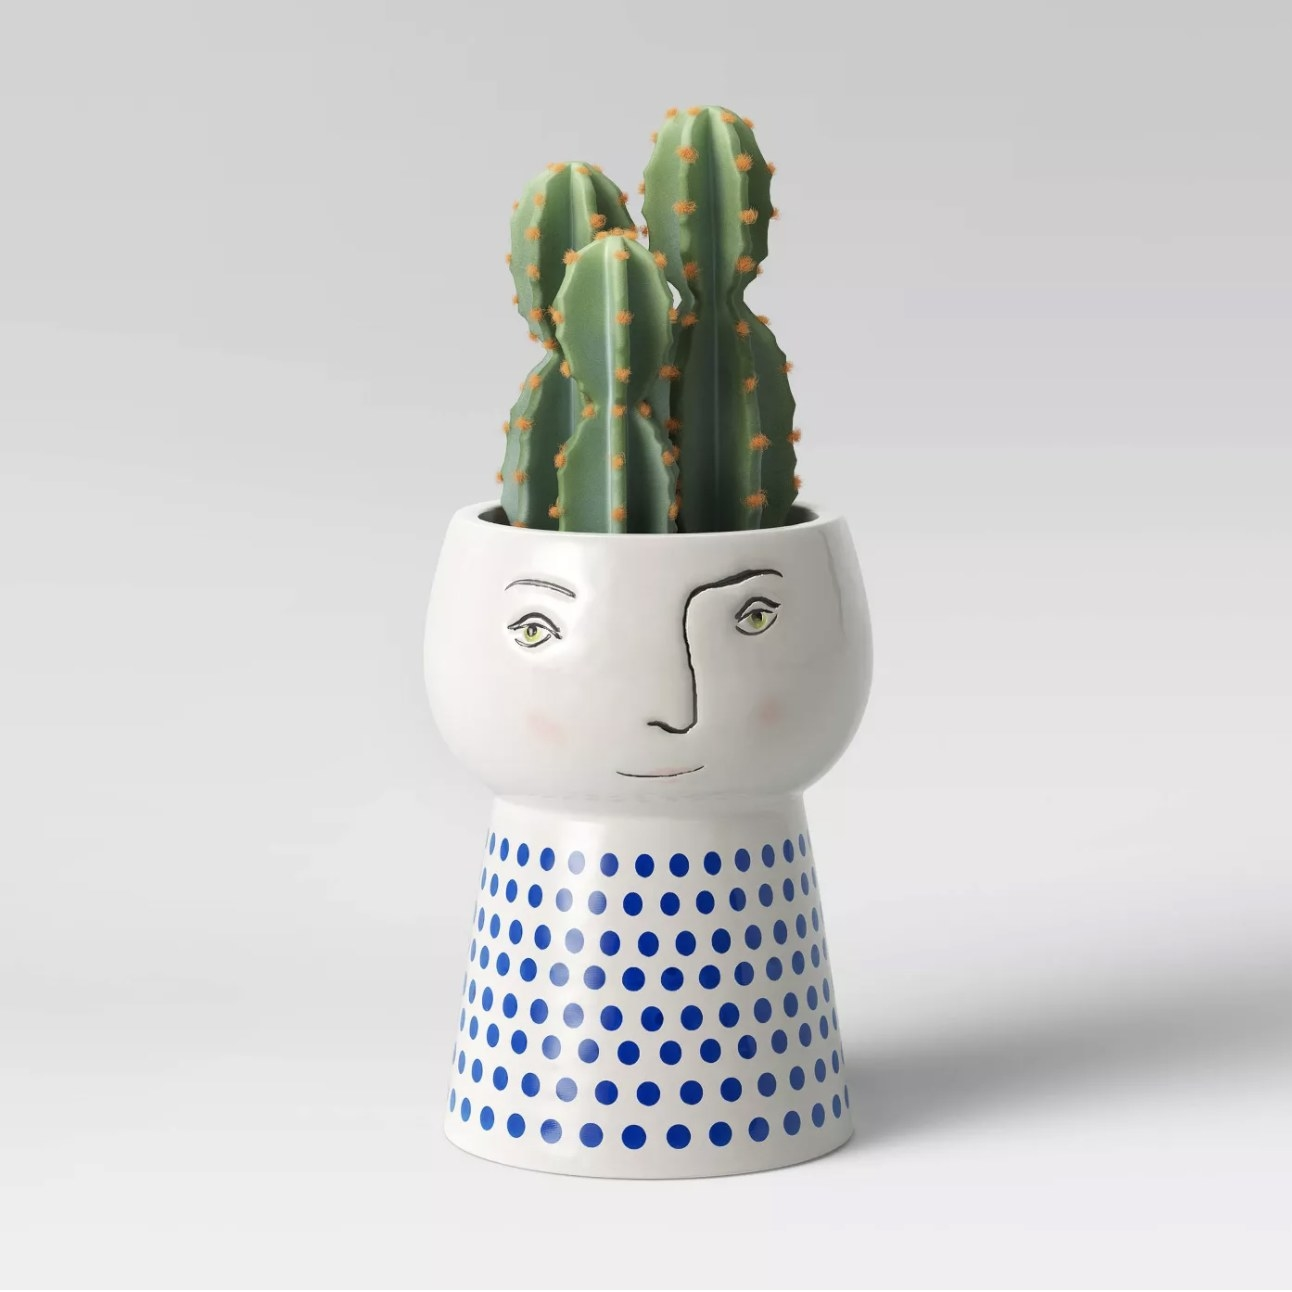 Planter with cactus in it